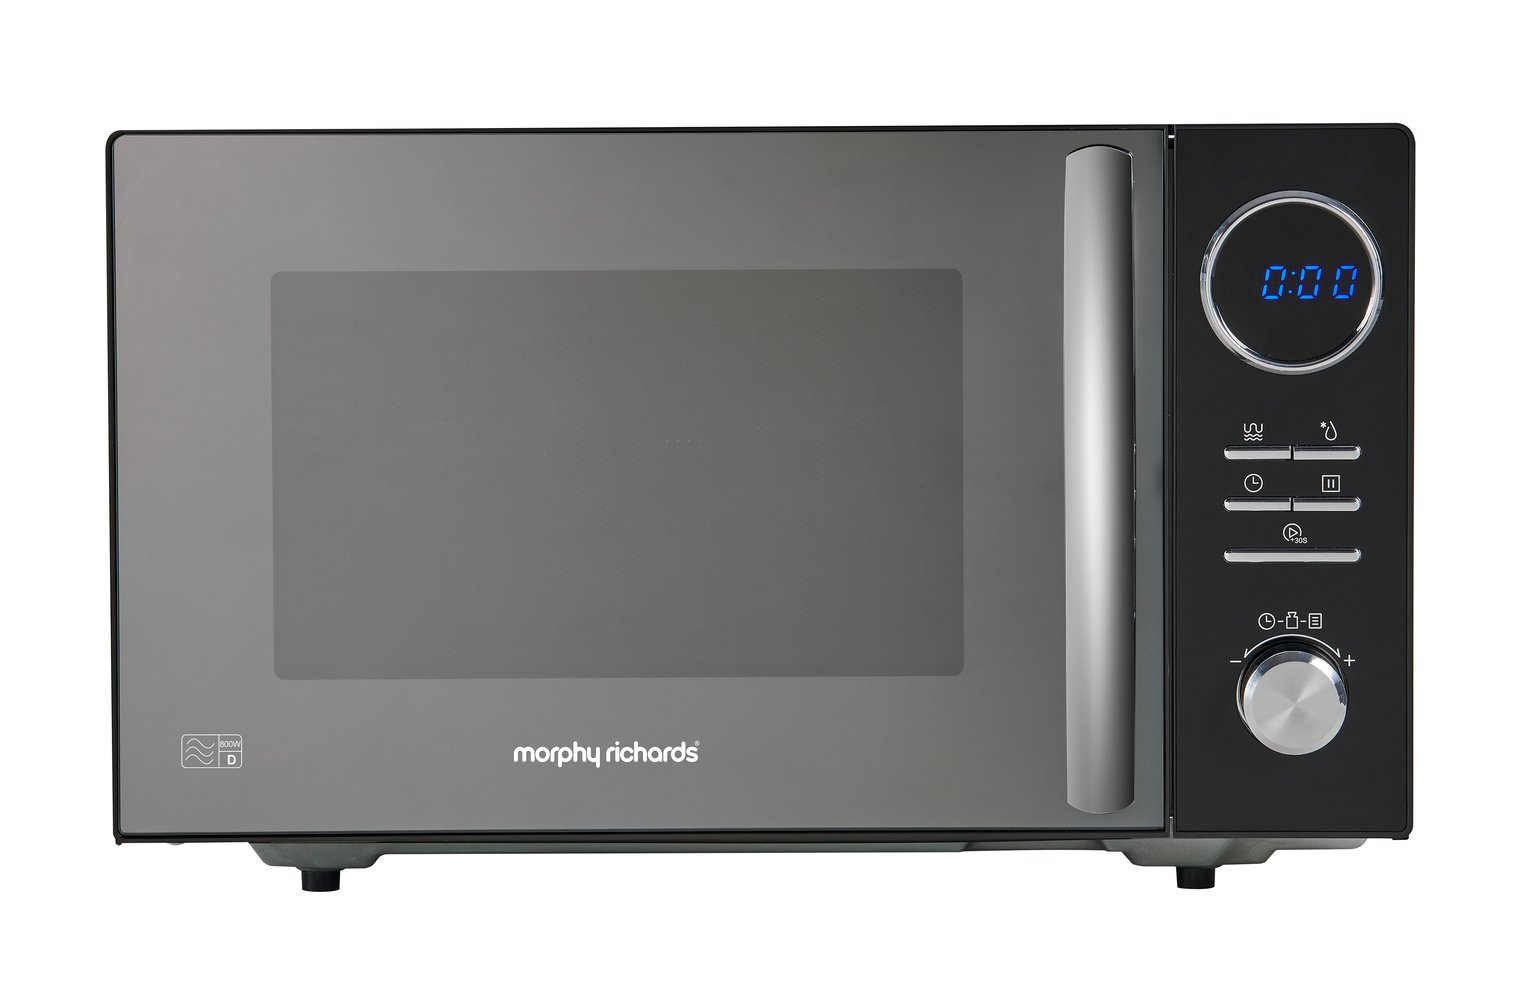 Morphy Richards 800W Microwave with Grill - Black